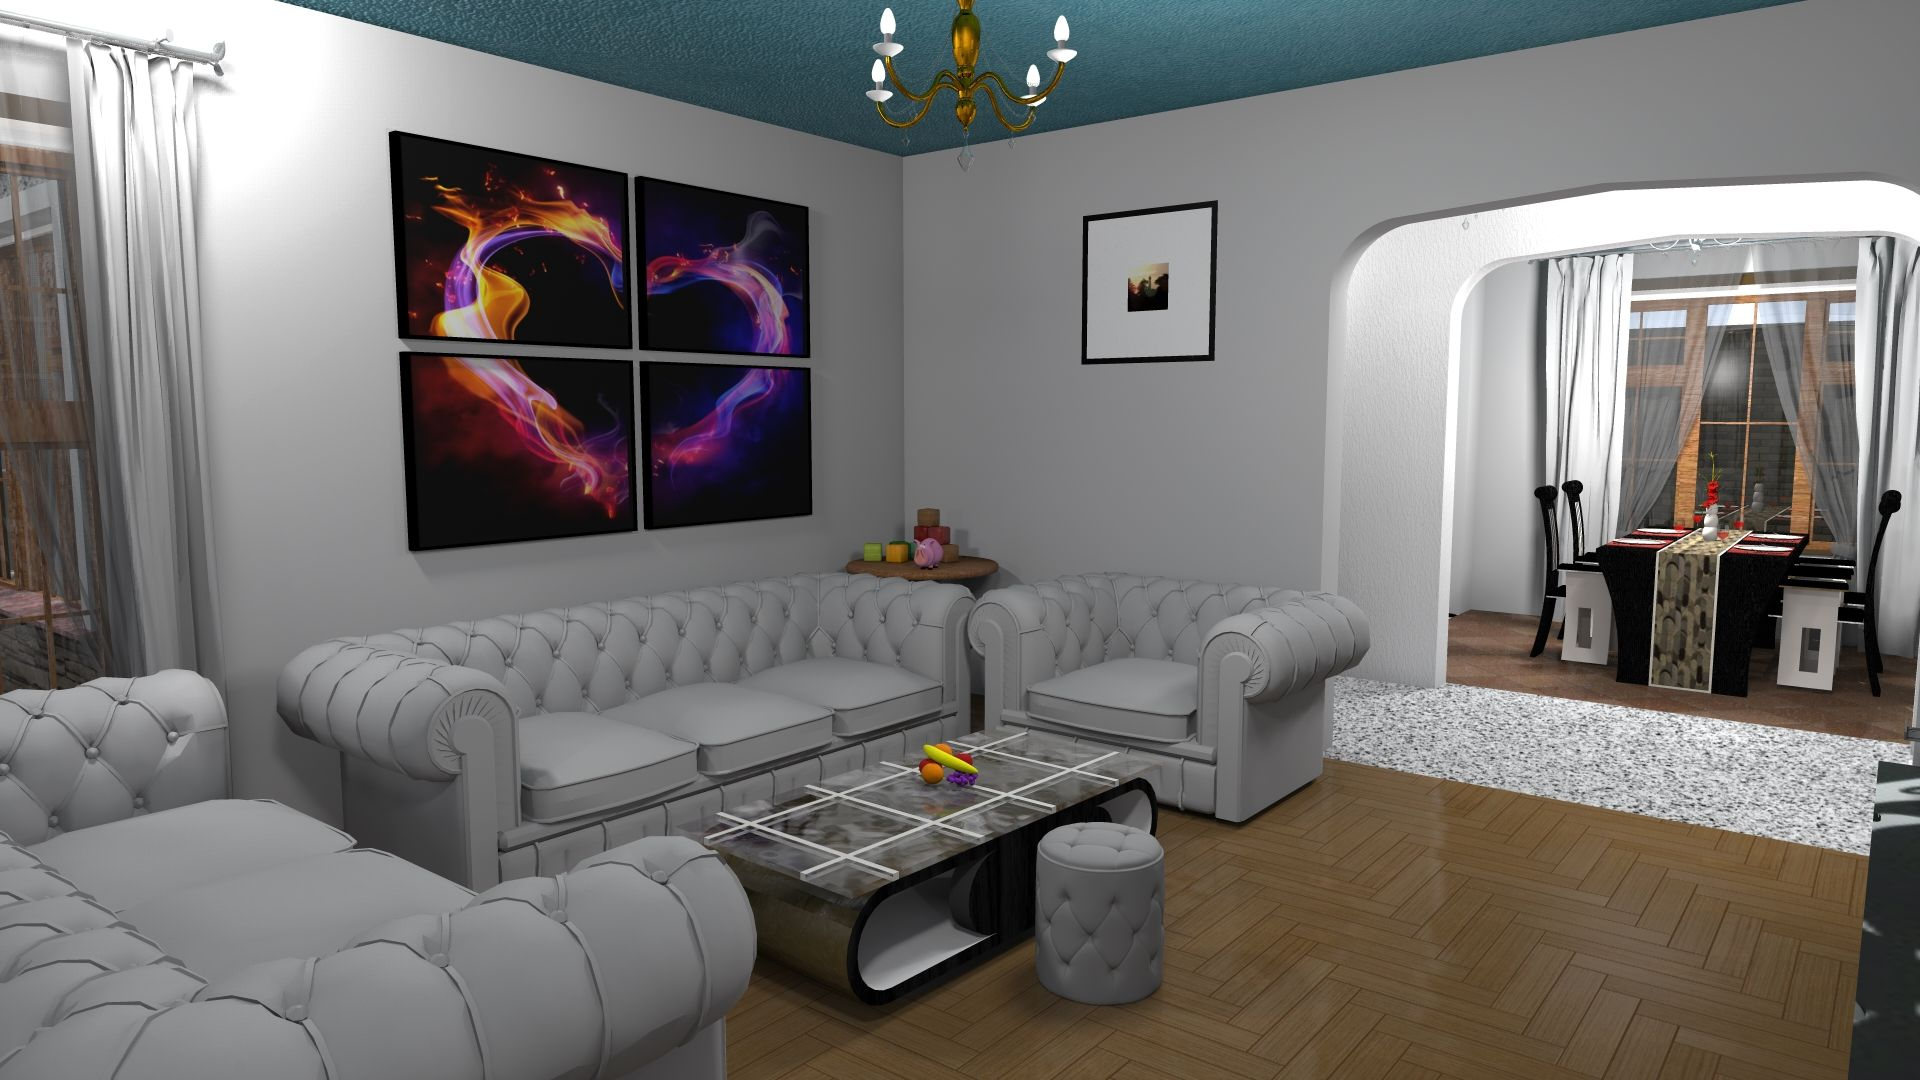 Three Bedroom Bungalow House Design In Kenya Muthurwa Com In